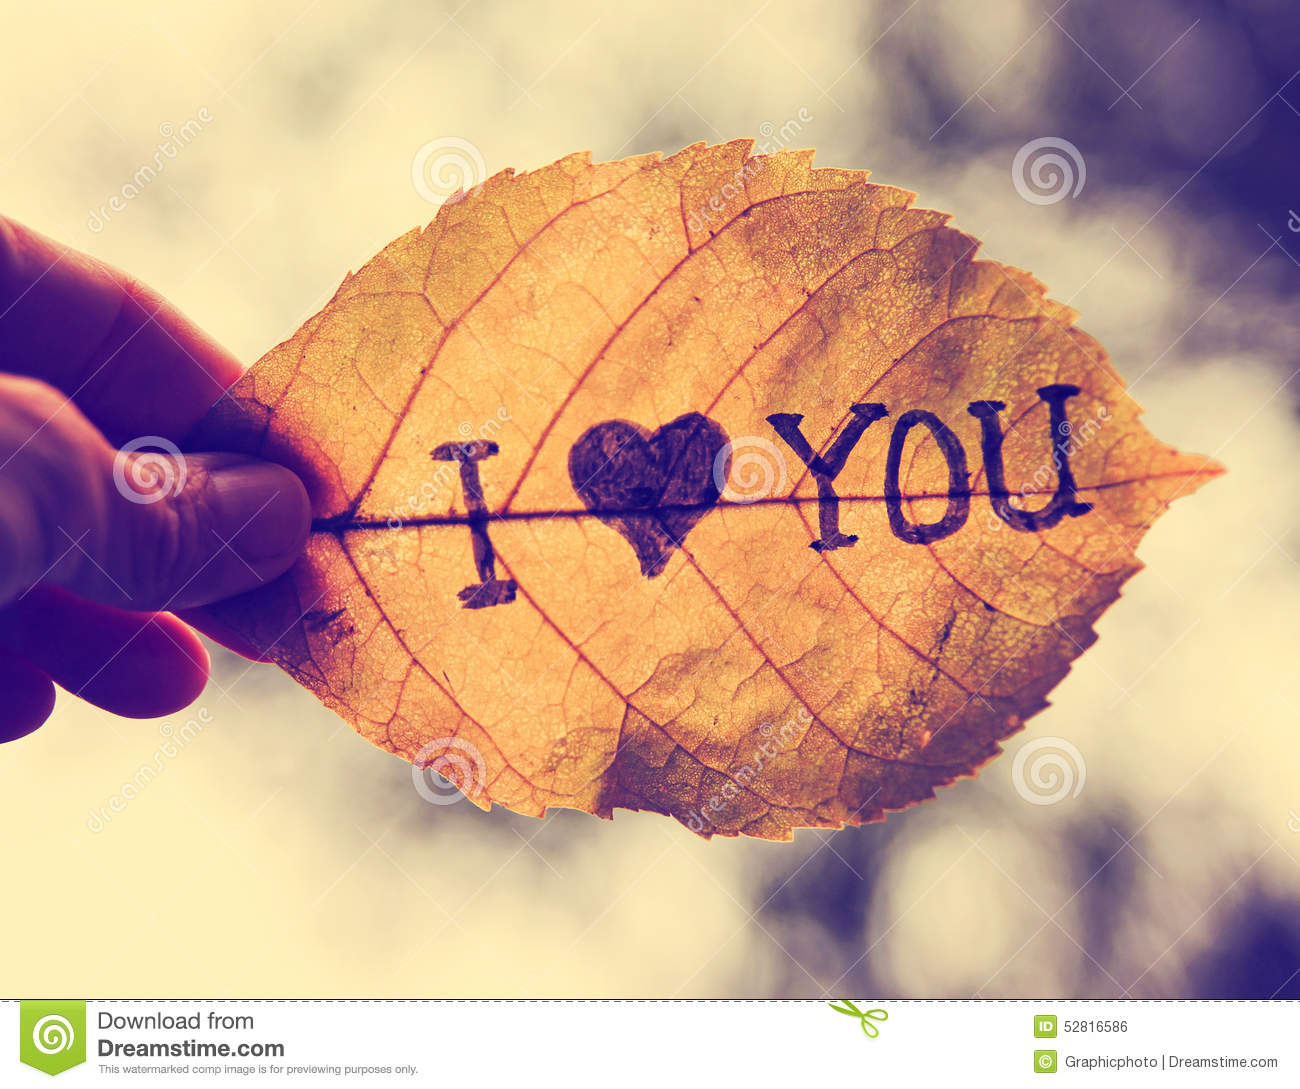 Dark Fall Wallpaper A Hand Holding A Leaf That Reads I Love You Stock Photo